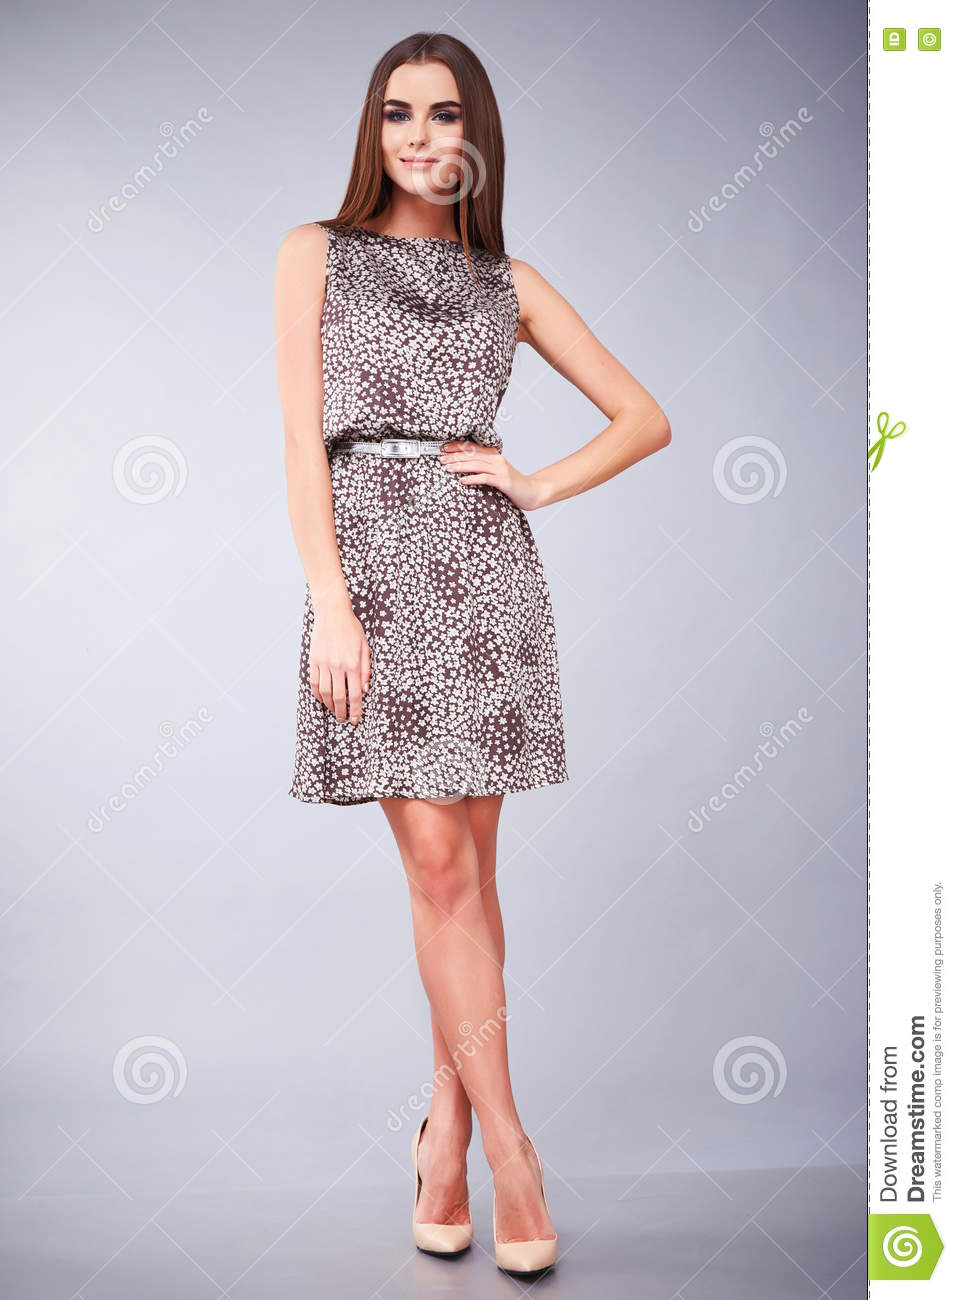 Catalog Of Fashion Designers Clothes Casual And Office Stock Photo Image Of Collection Comfortable 71801474